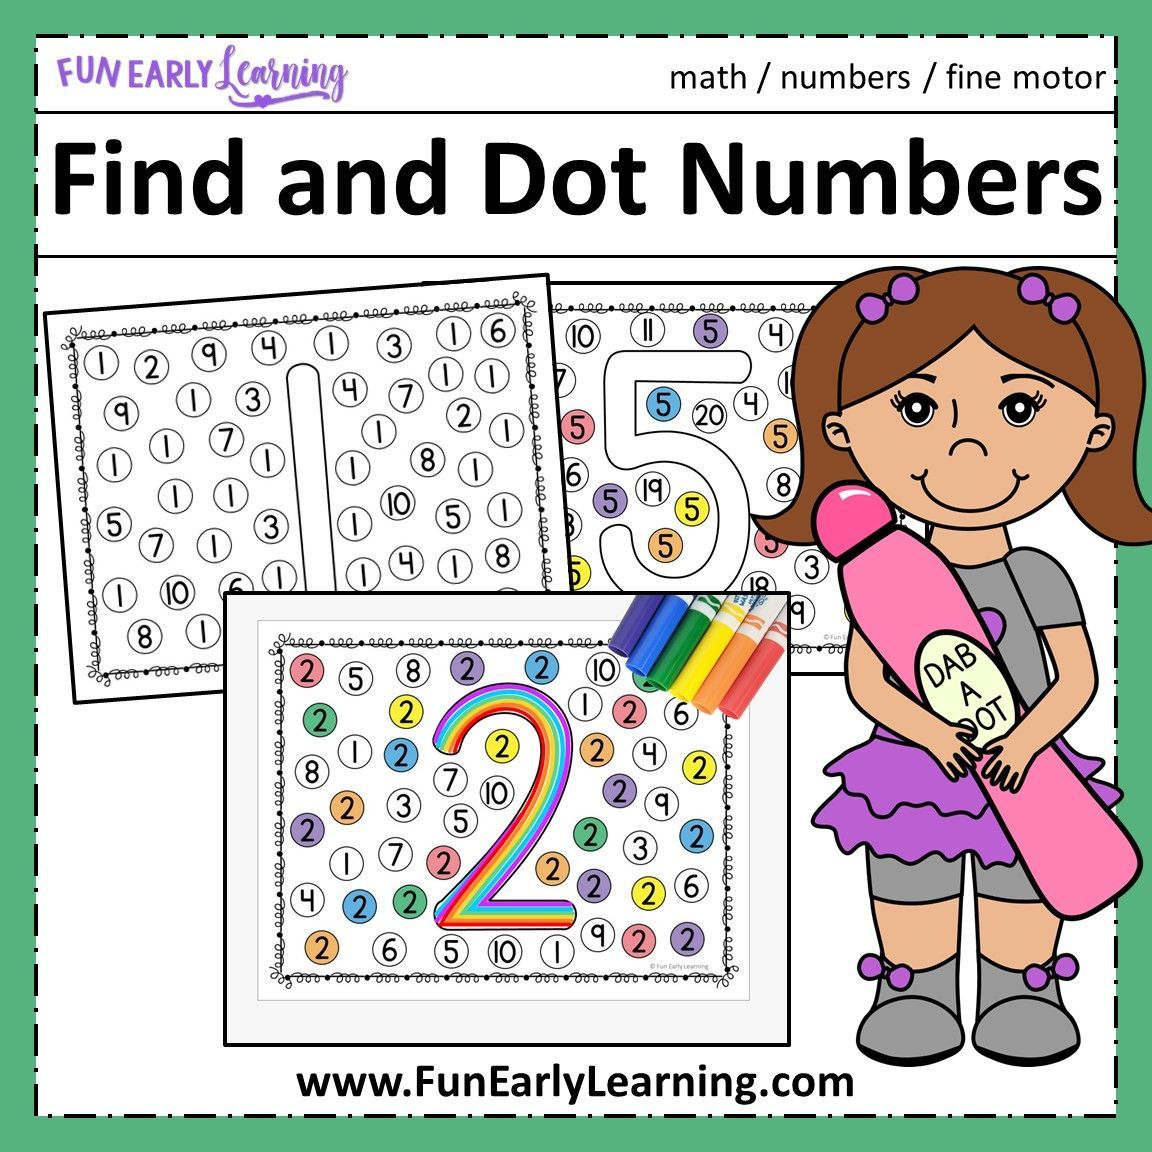 Find And Dot Matching Numbers In